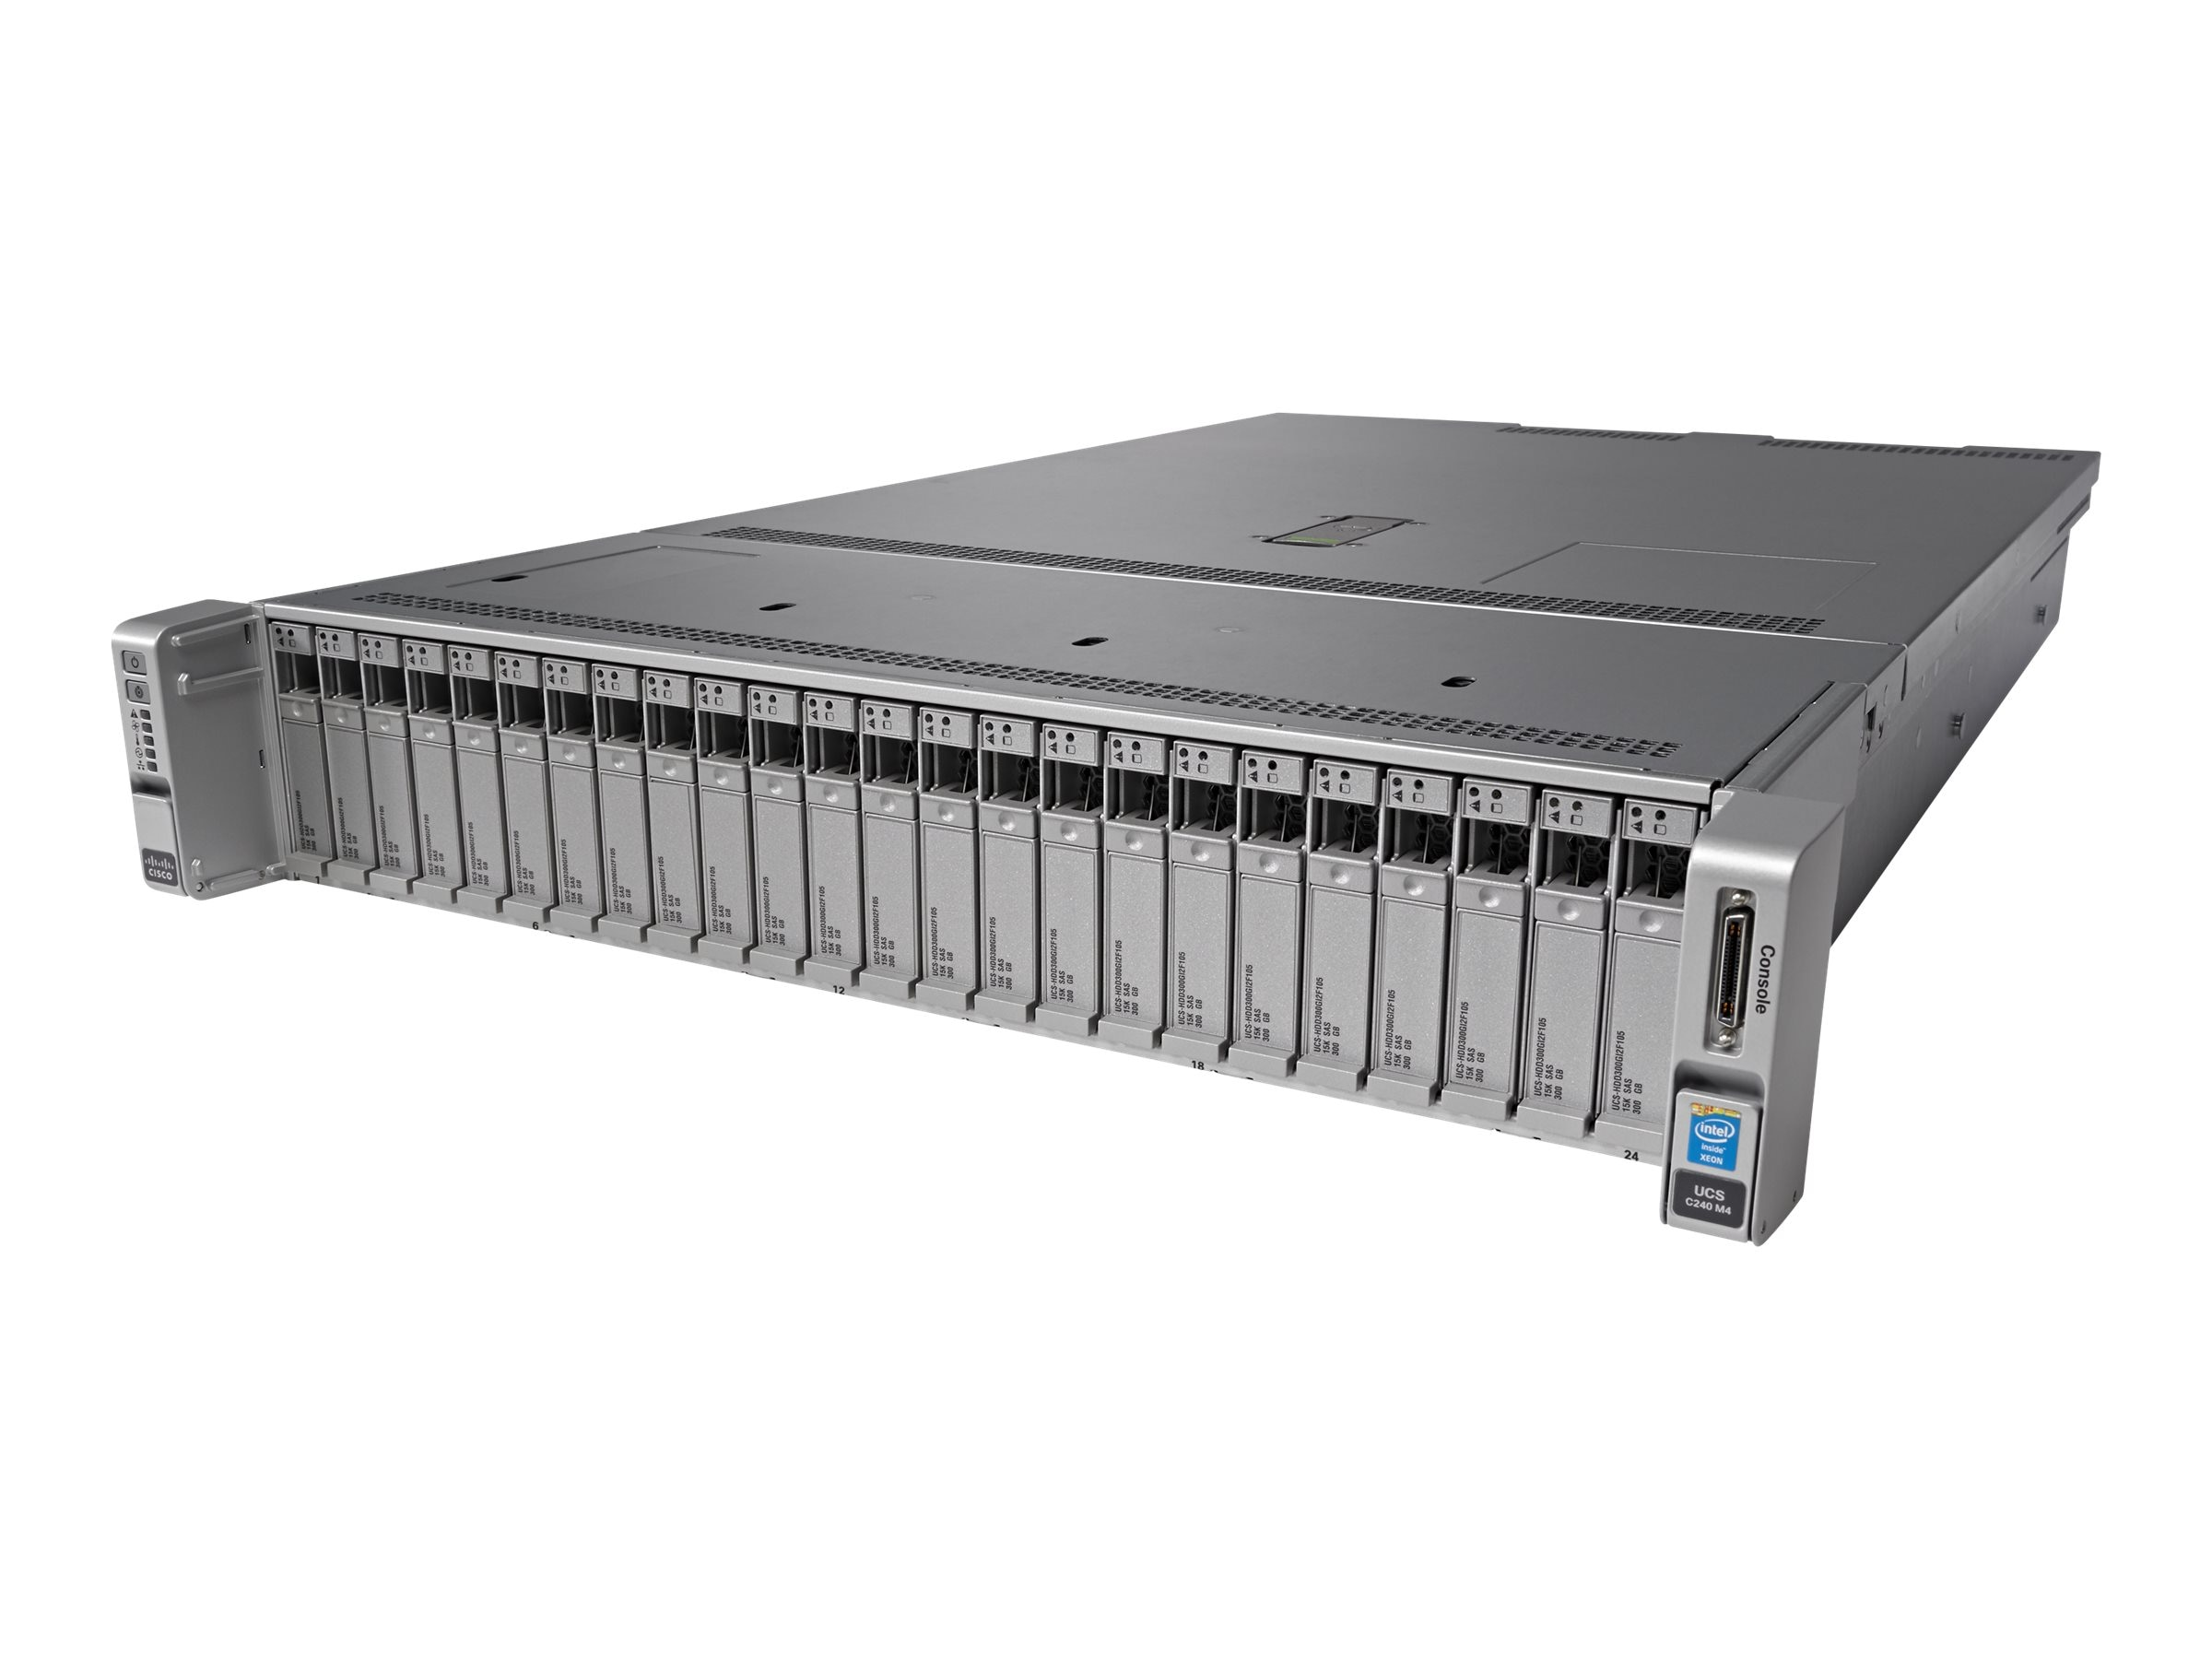 Cisco UCS-SP-C240M4-B-F1 Image 1